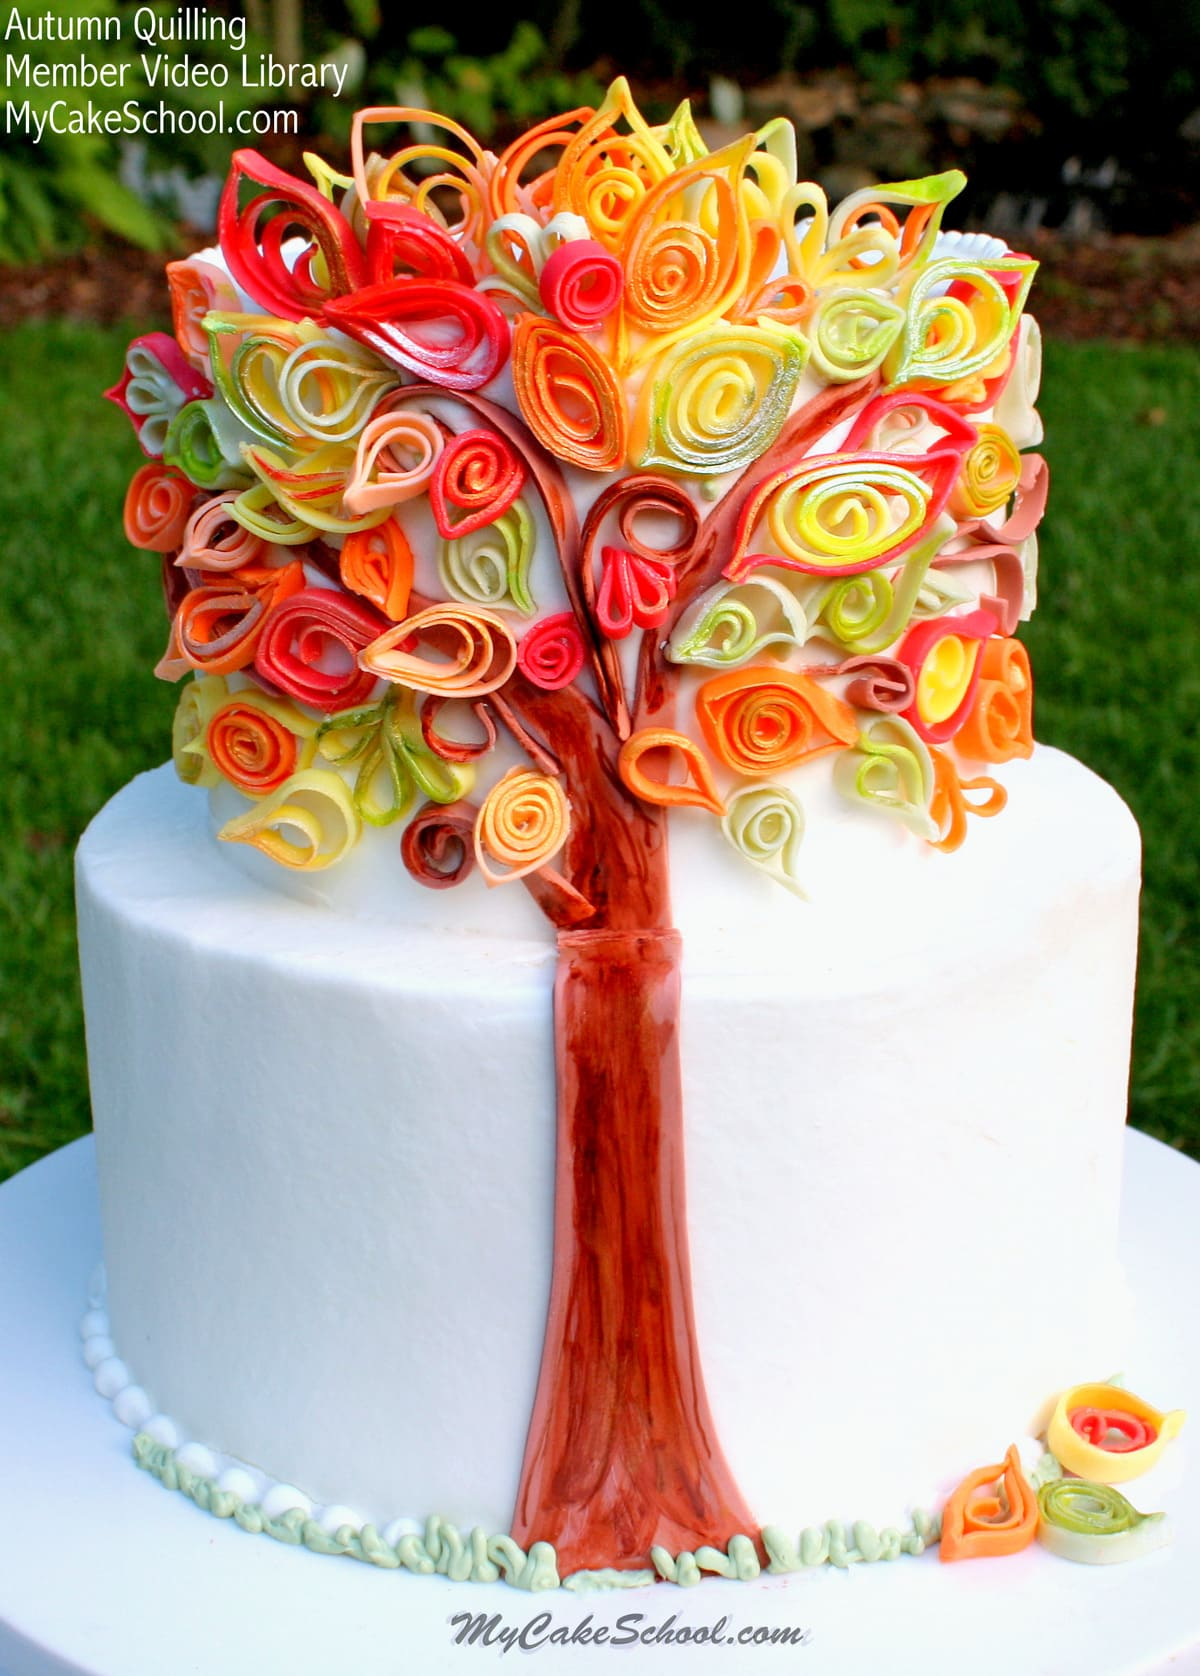 Autumn Fondant Quilling! Member Section- My Cake School